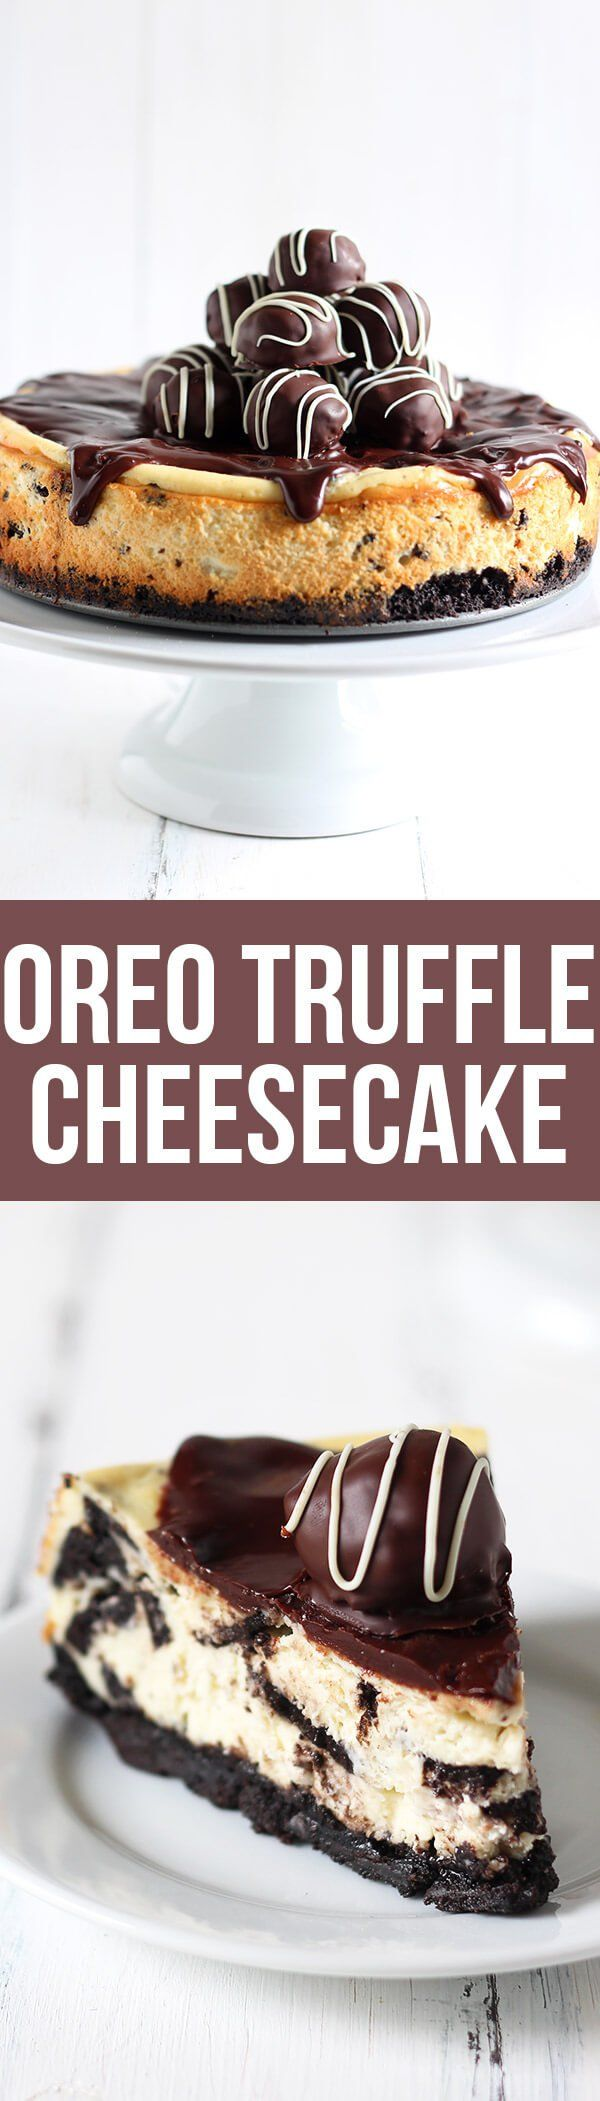 The dessert of my DREAMS! Oreo Truffle Cheesecake is a completely over-the-top sinful dessert with an Oreo crust, Oreo cheesecake filling, chocolate ganache, and Oreo truffles on top! Holy YUM.